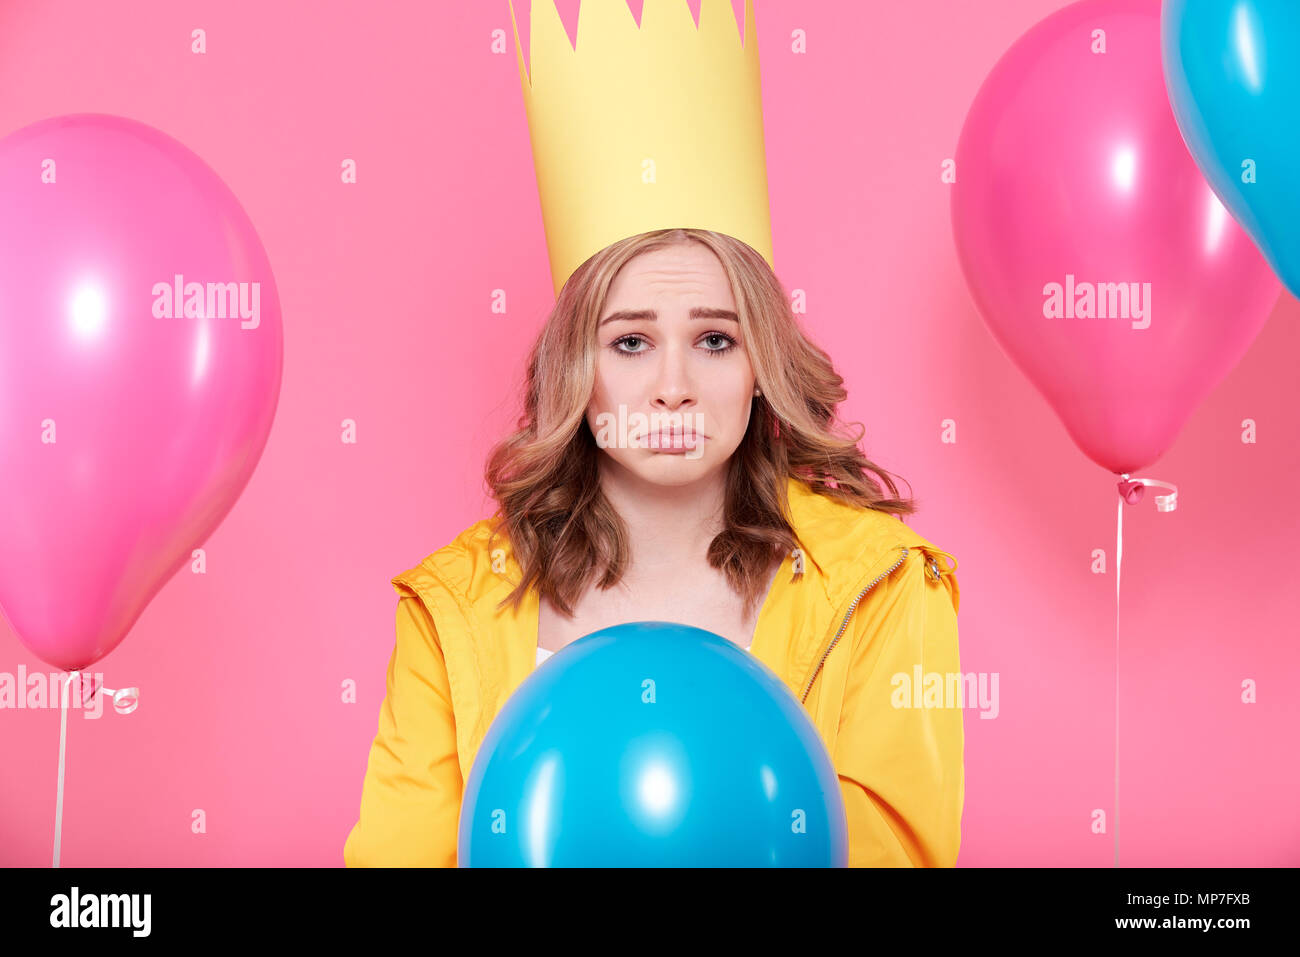 Disappointed young woman in party hat surrounded by colorful balloons, isolated over pastel pink background. Sad Birthday Party concept. - Stock Image